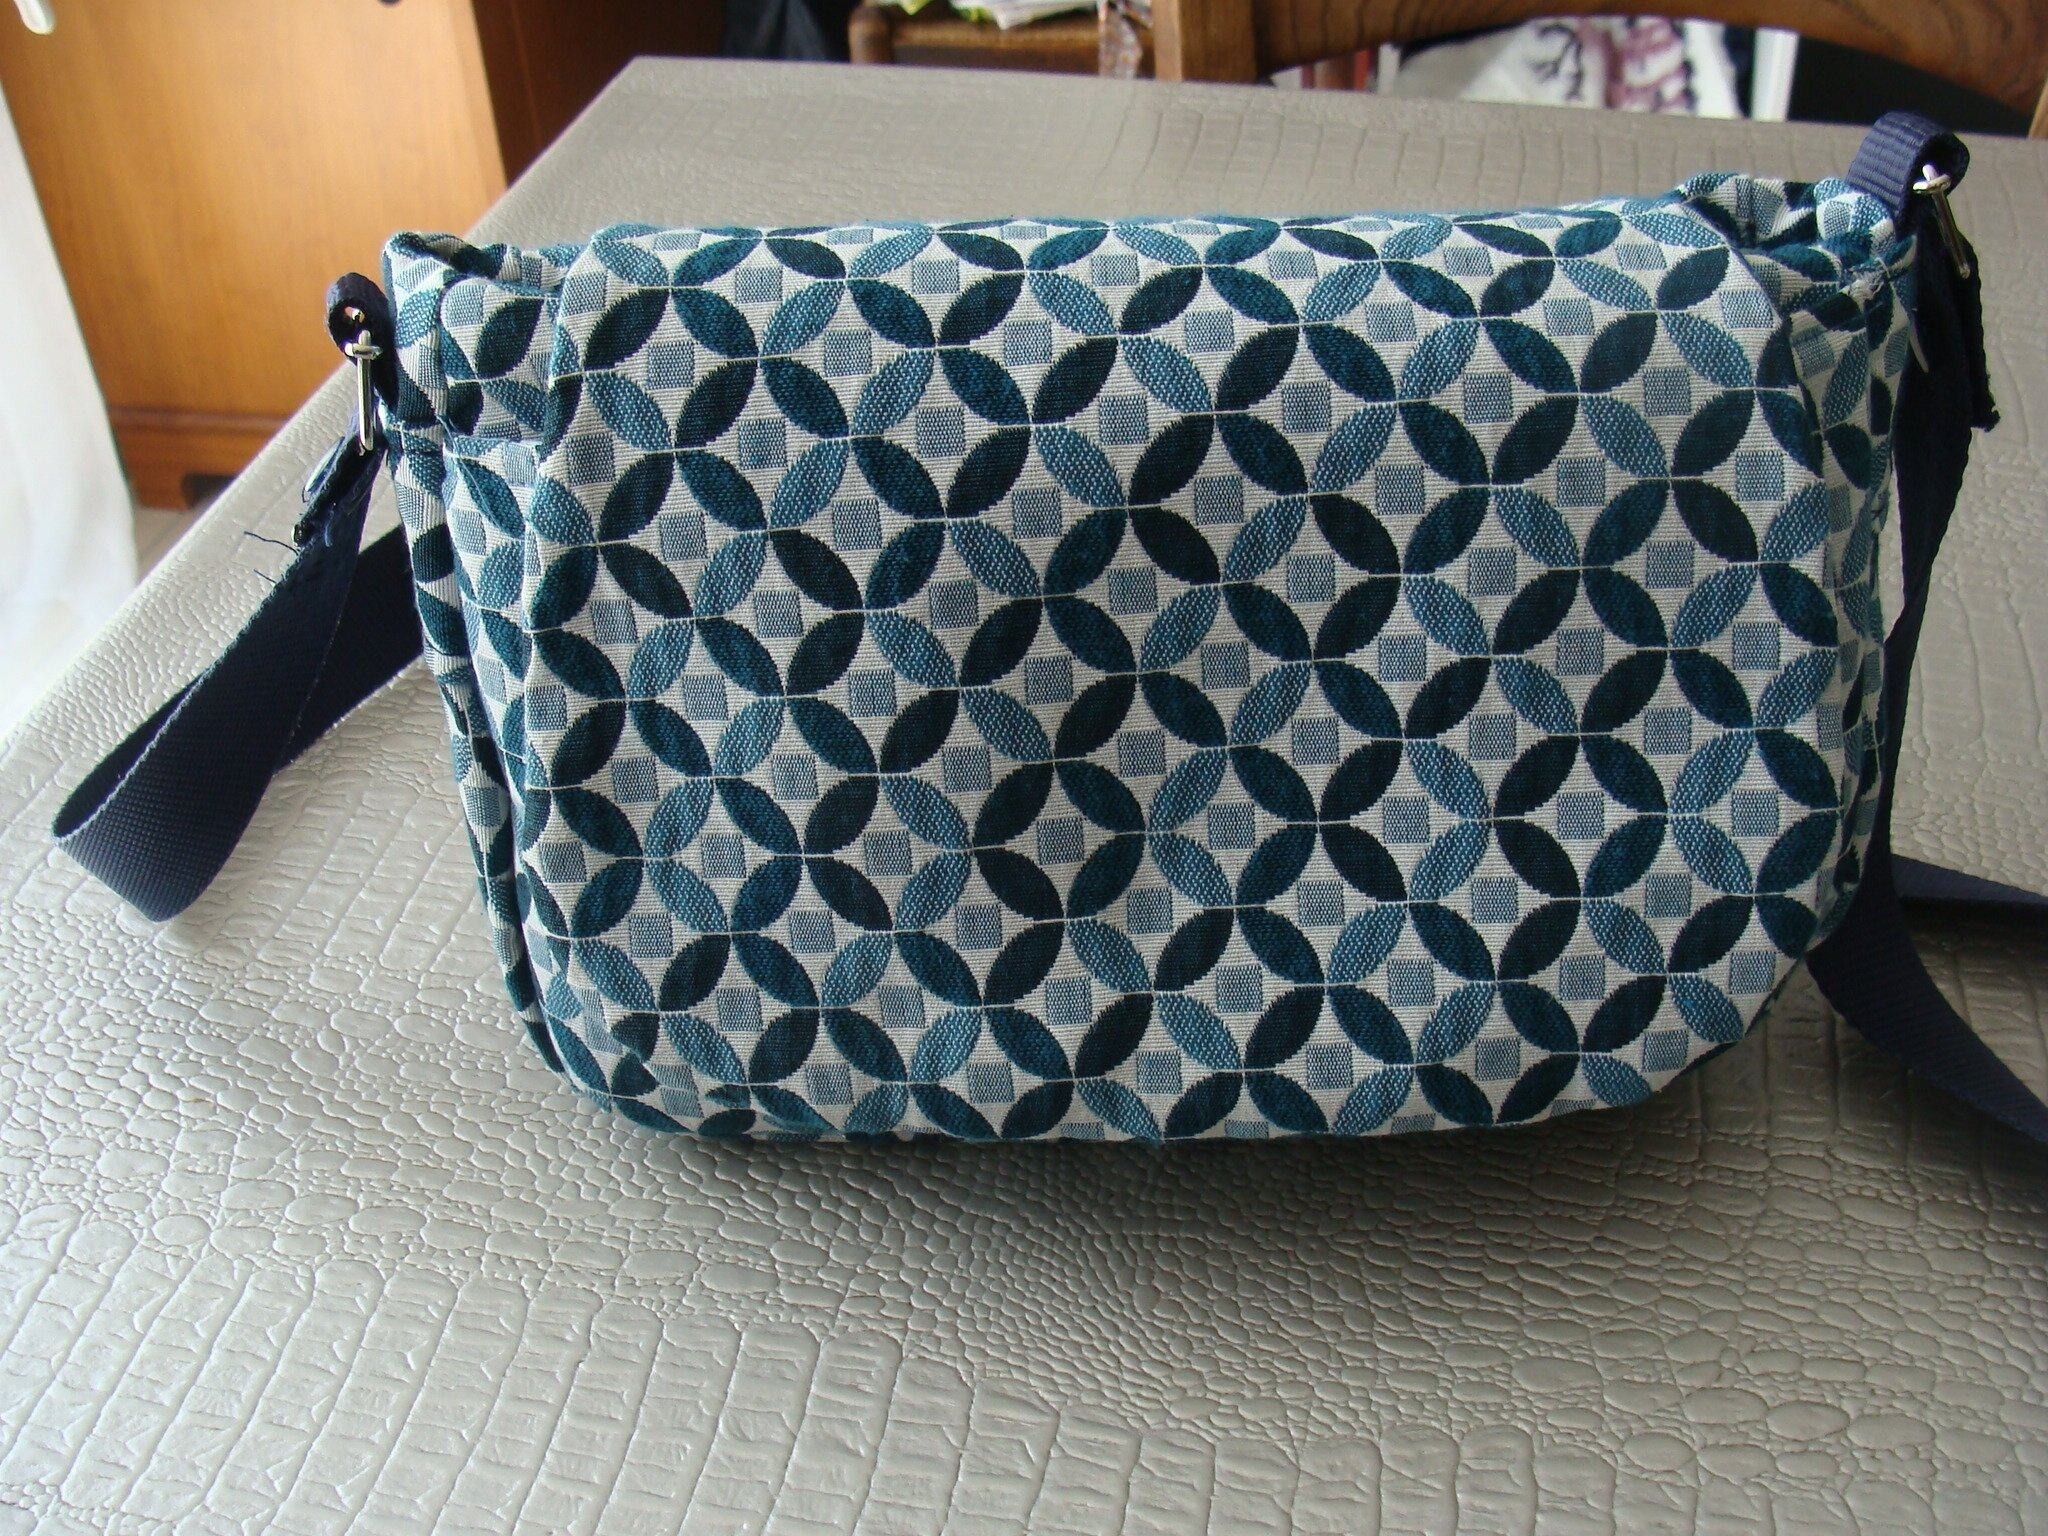 sac pour ma pomme made in china